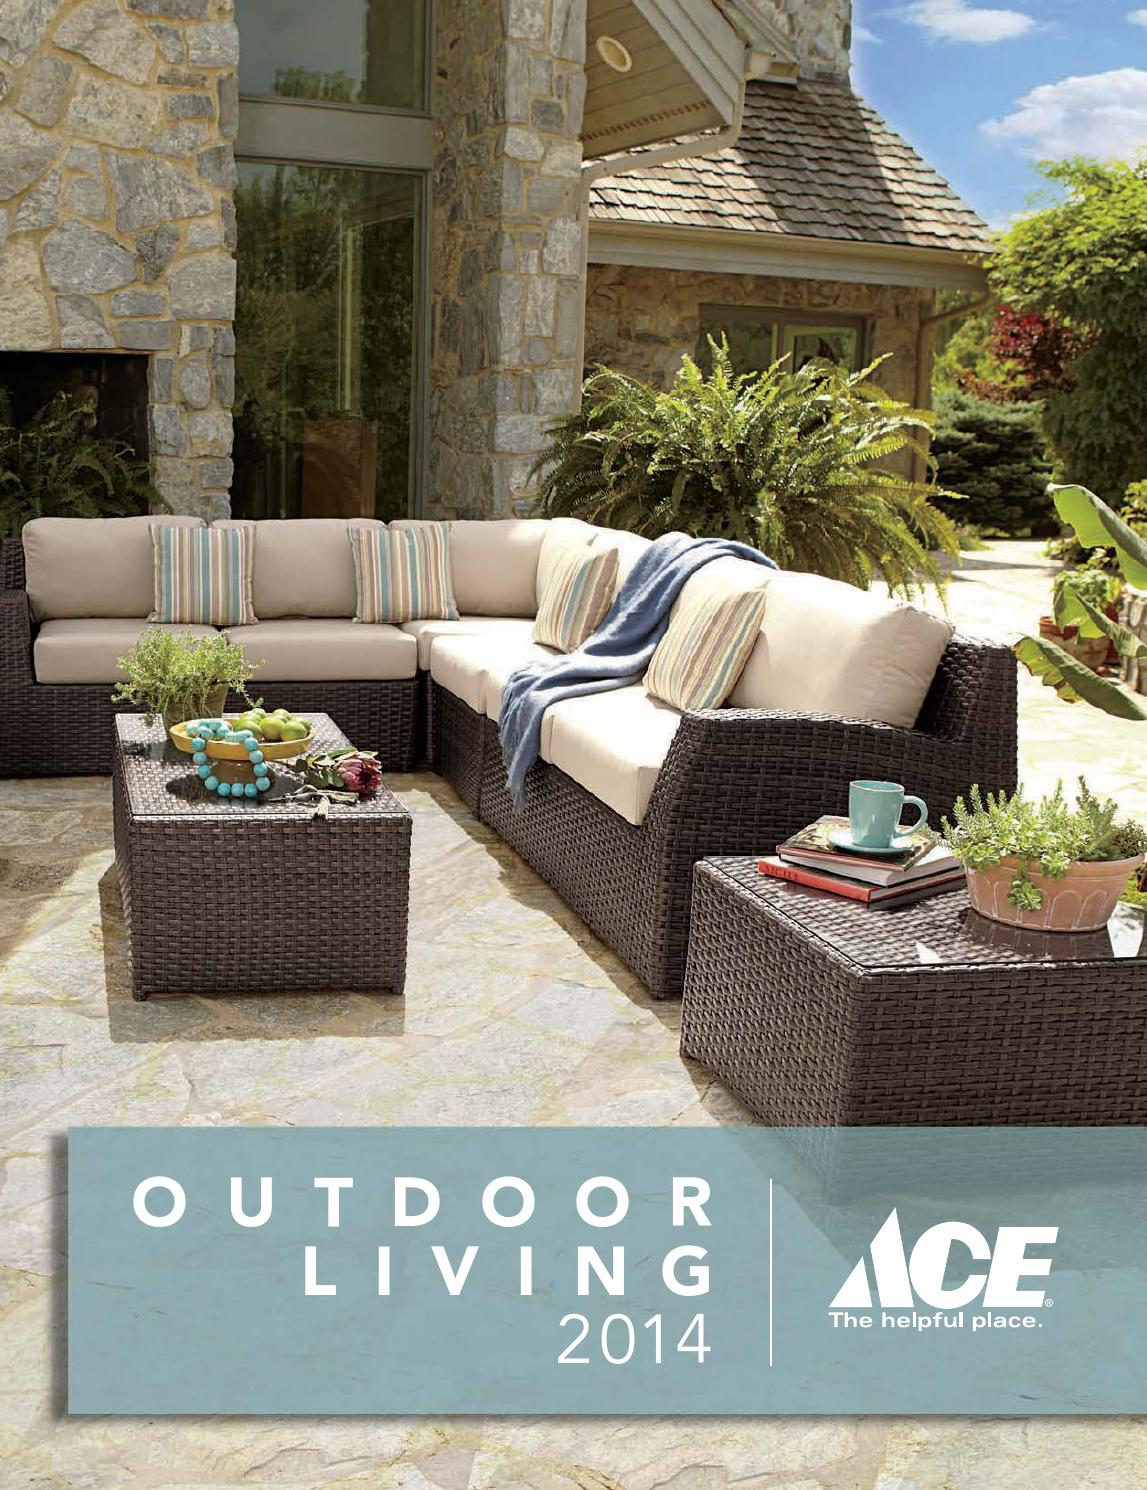 Ace Outdoor Living Catalog 2014 by FootSteps Marketing ... on Ace Outdoor Living id=75067